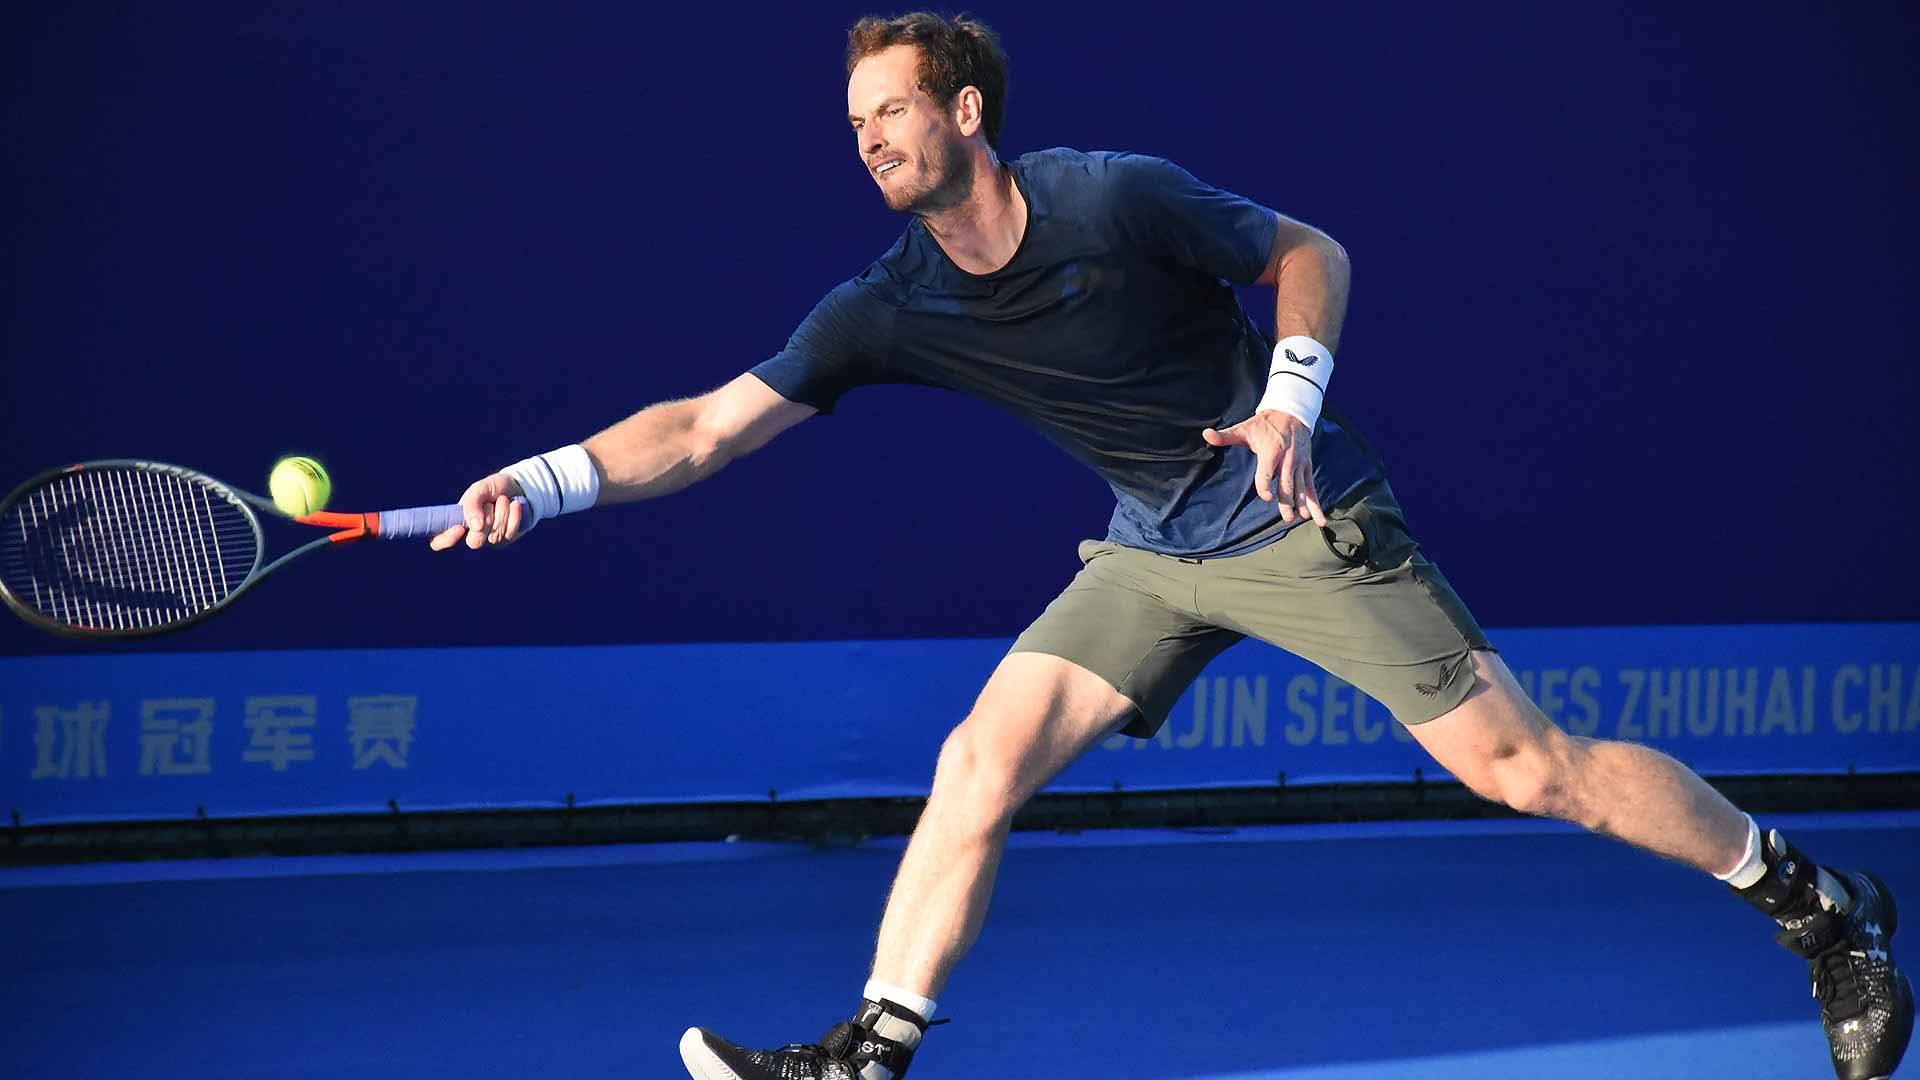 Andy Murray, Zhuhai 2019